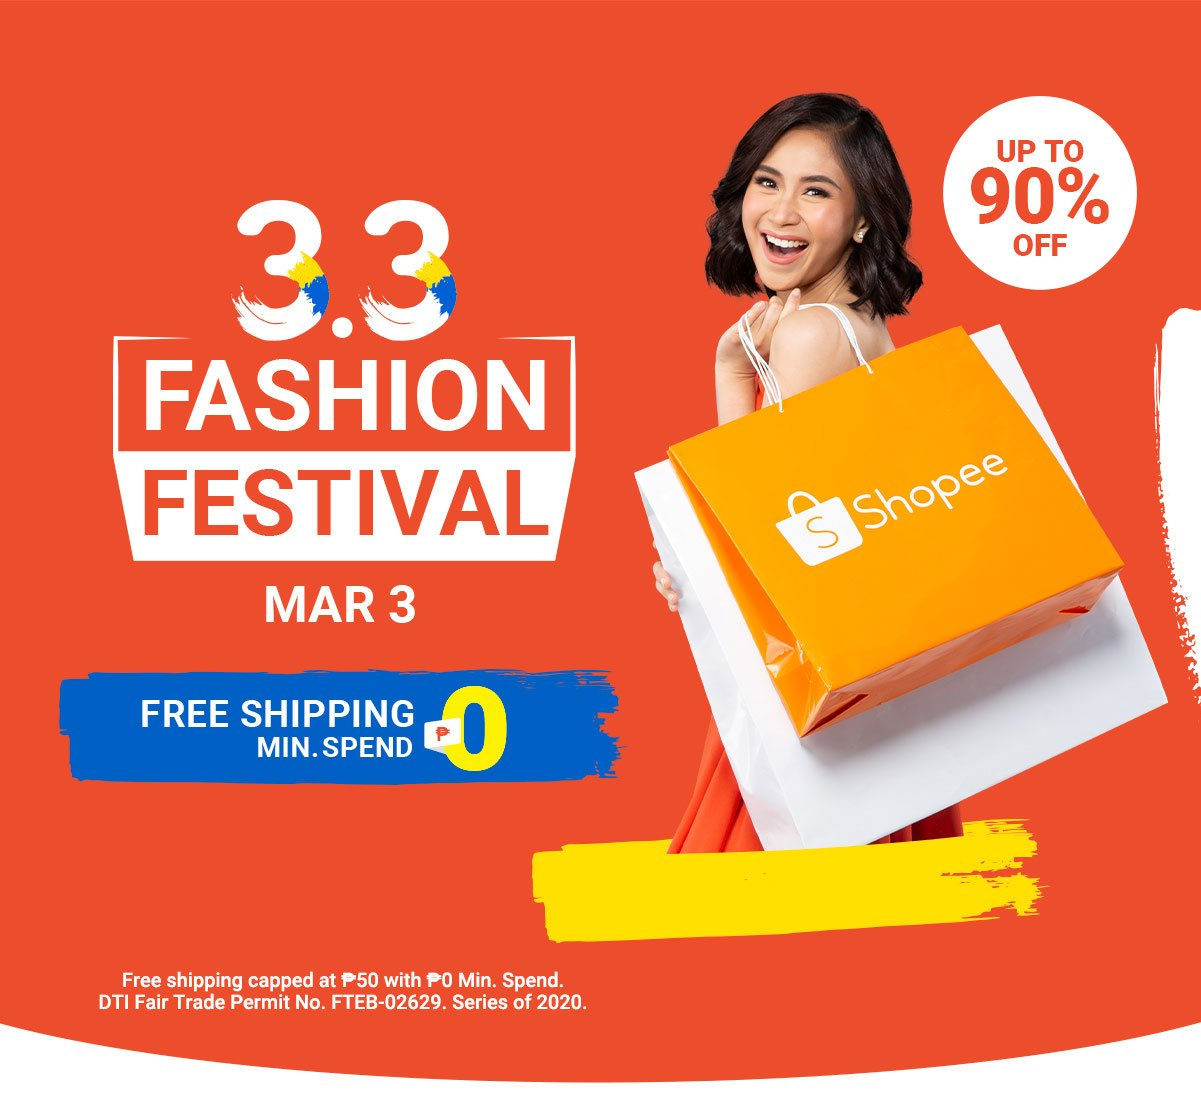 Shopee PH Deals at up to 20 OFF with the Shopee 20.20 Fashion ...